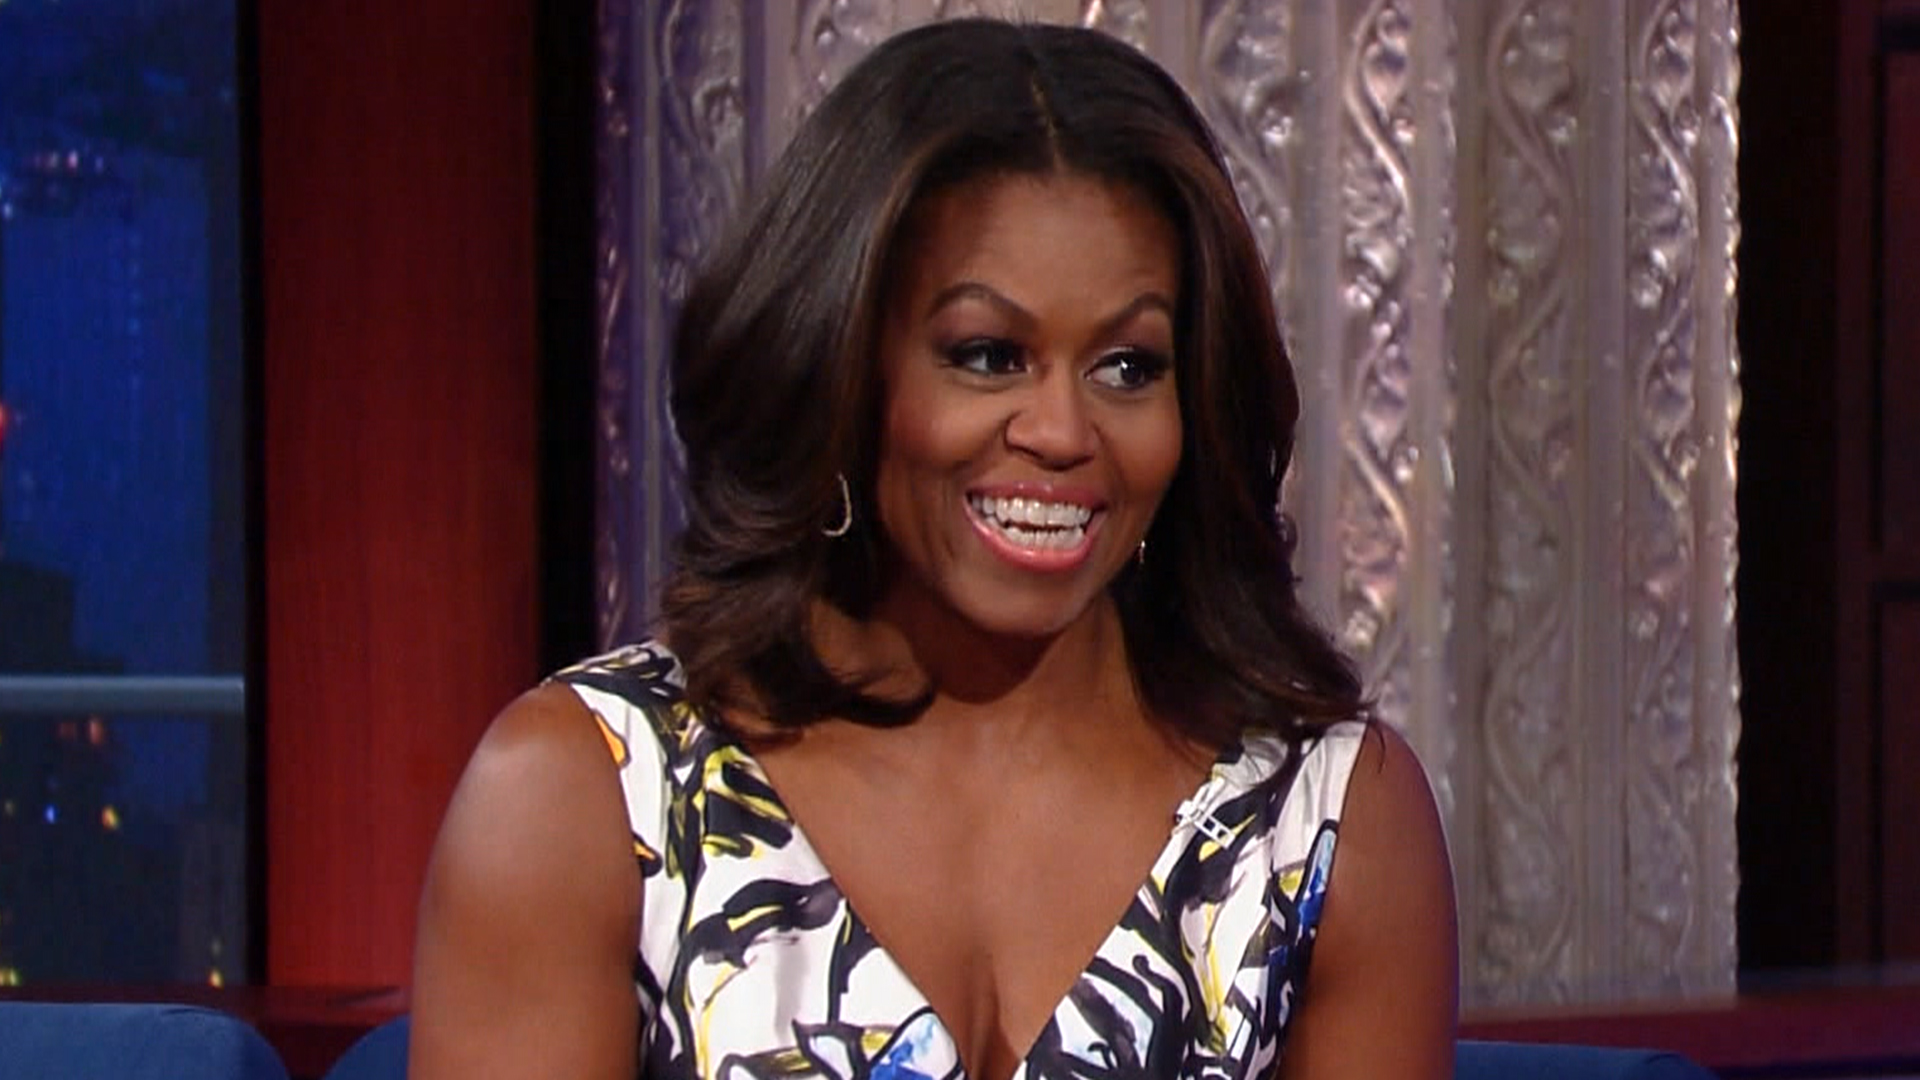 Michelle Obama Jokes About Life After The White House